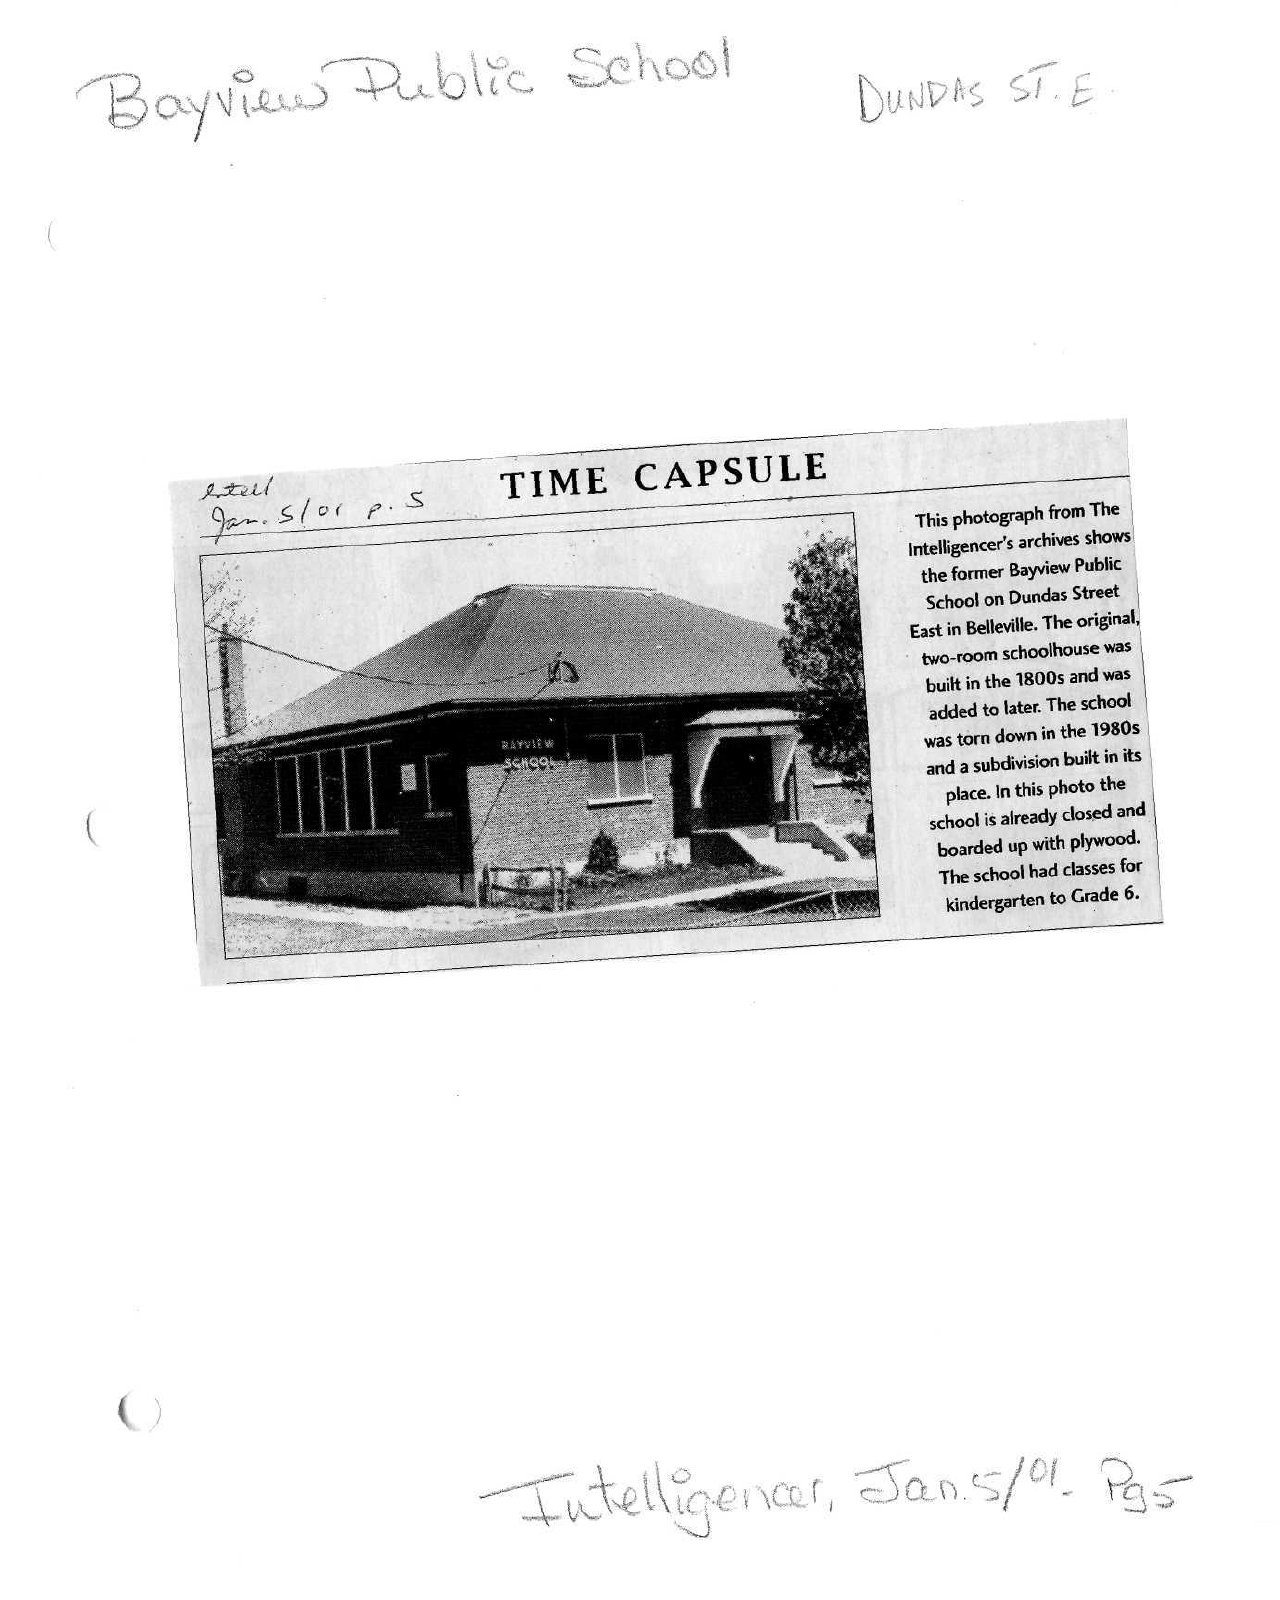 Time capsule: Bayview Public School